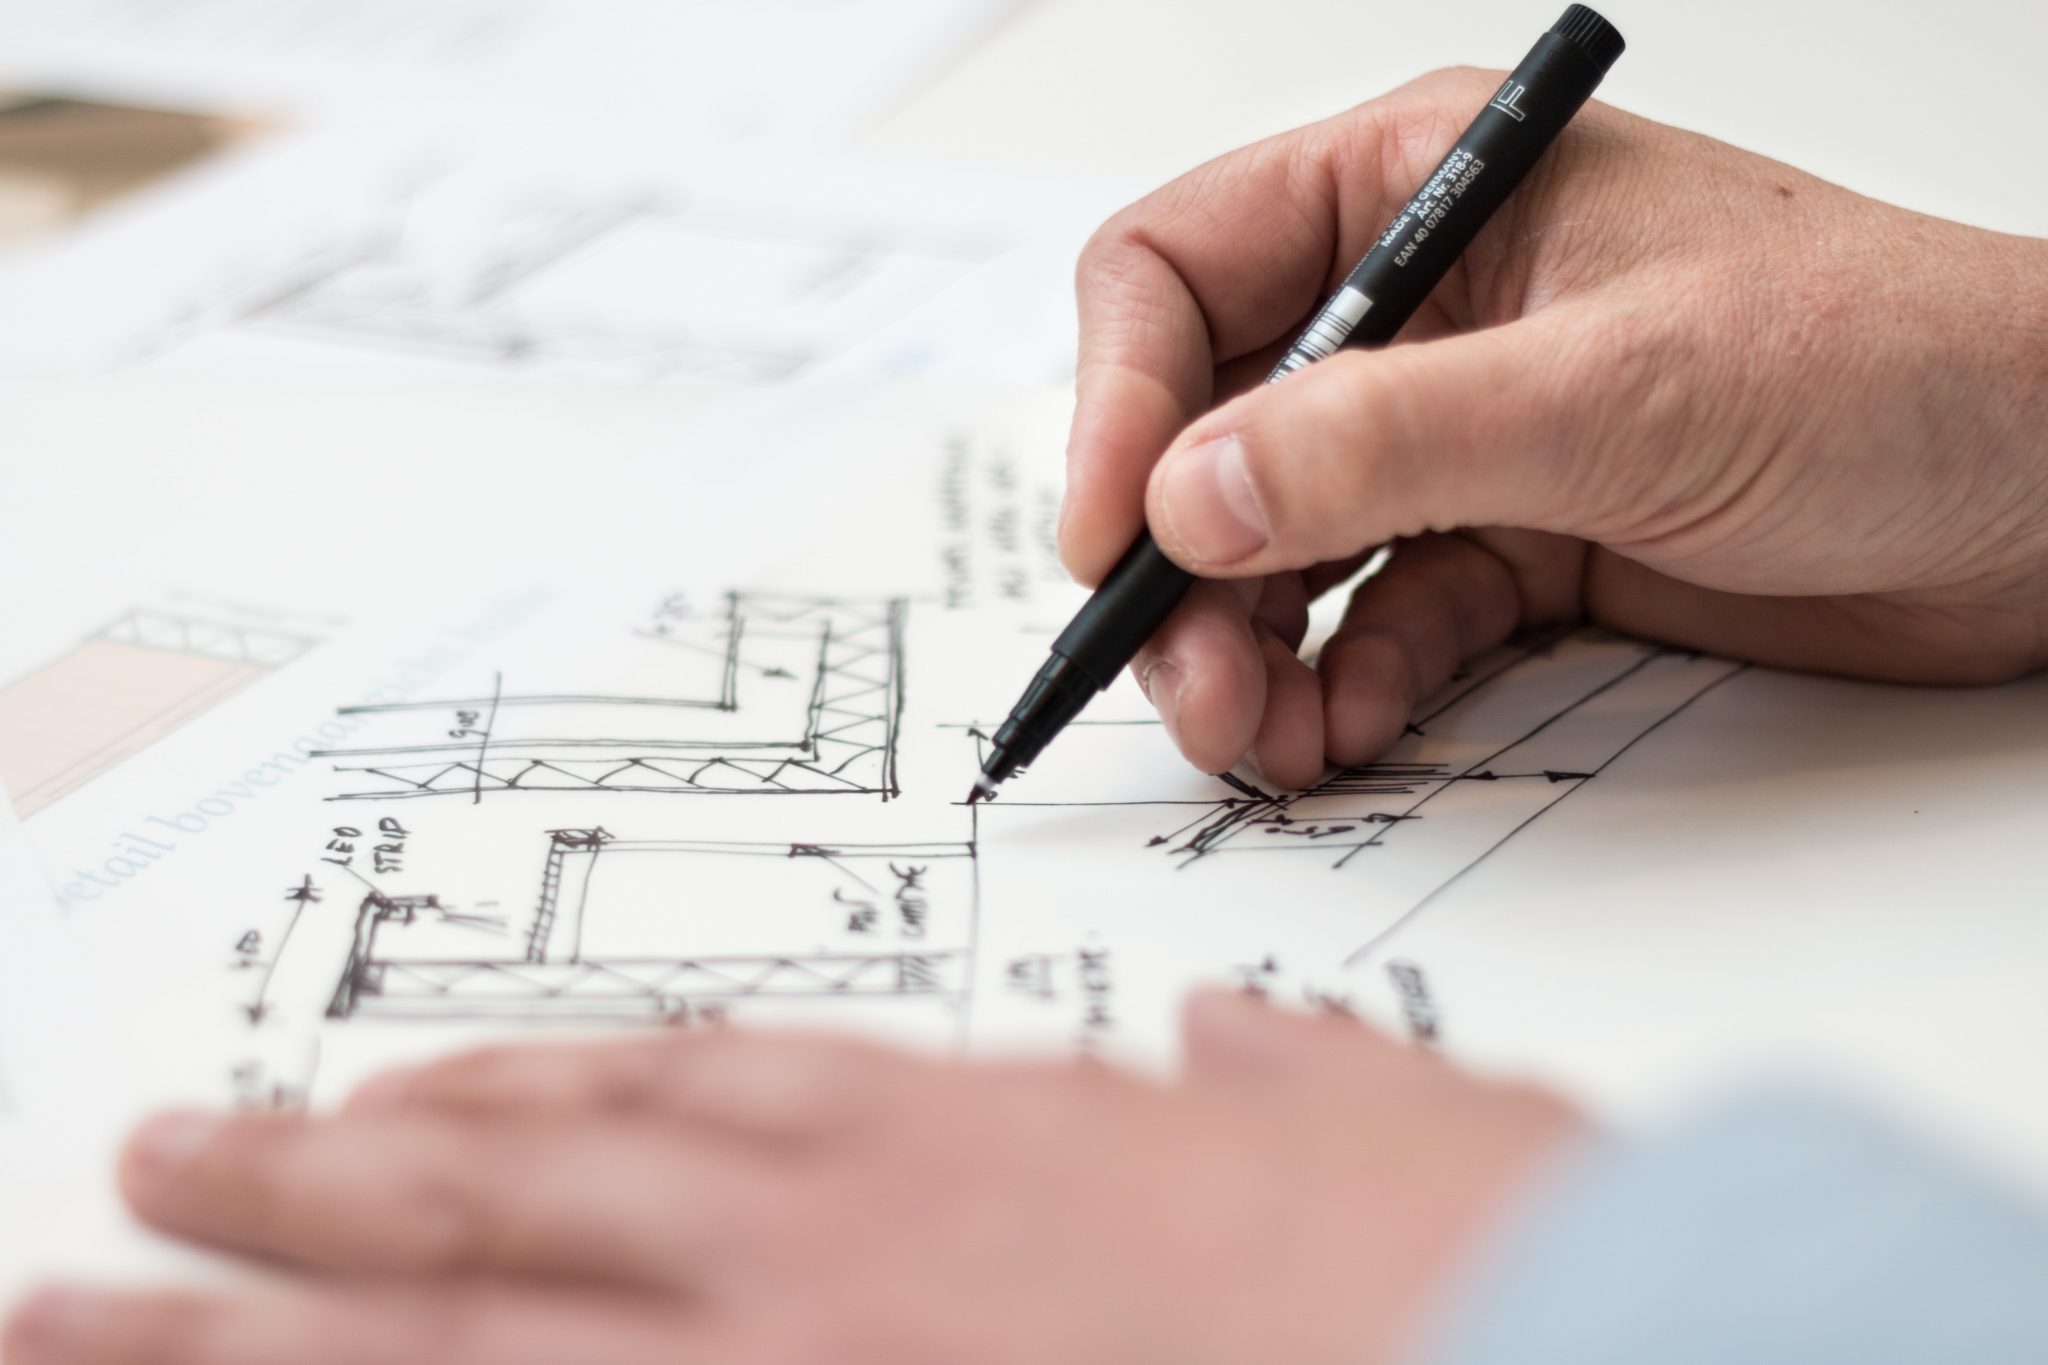 house plans how to read house plans, how to draw house plans, house floor plans, house designs, modern house plans Nethouseplans